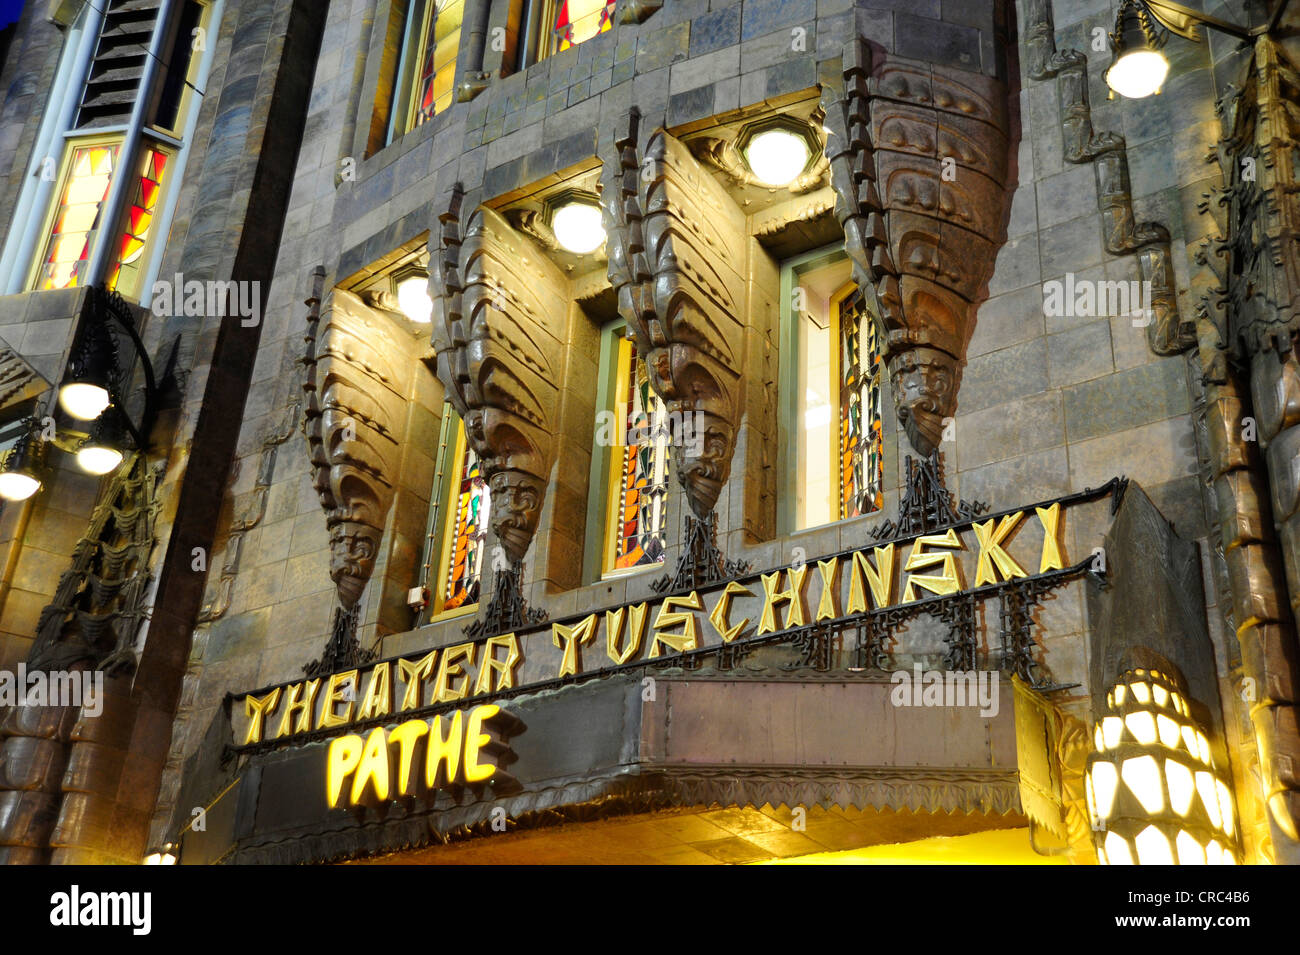 Pathe Tuschinski movie theater, art deco cinema, lighting in the Reguliersbreestraat street, city centre, Amsterdam - Stock Image